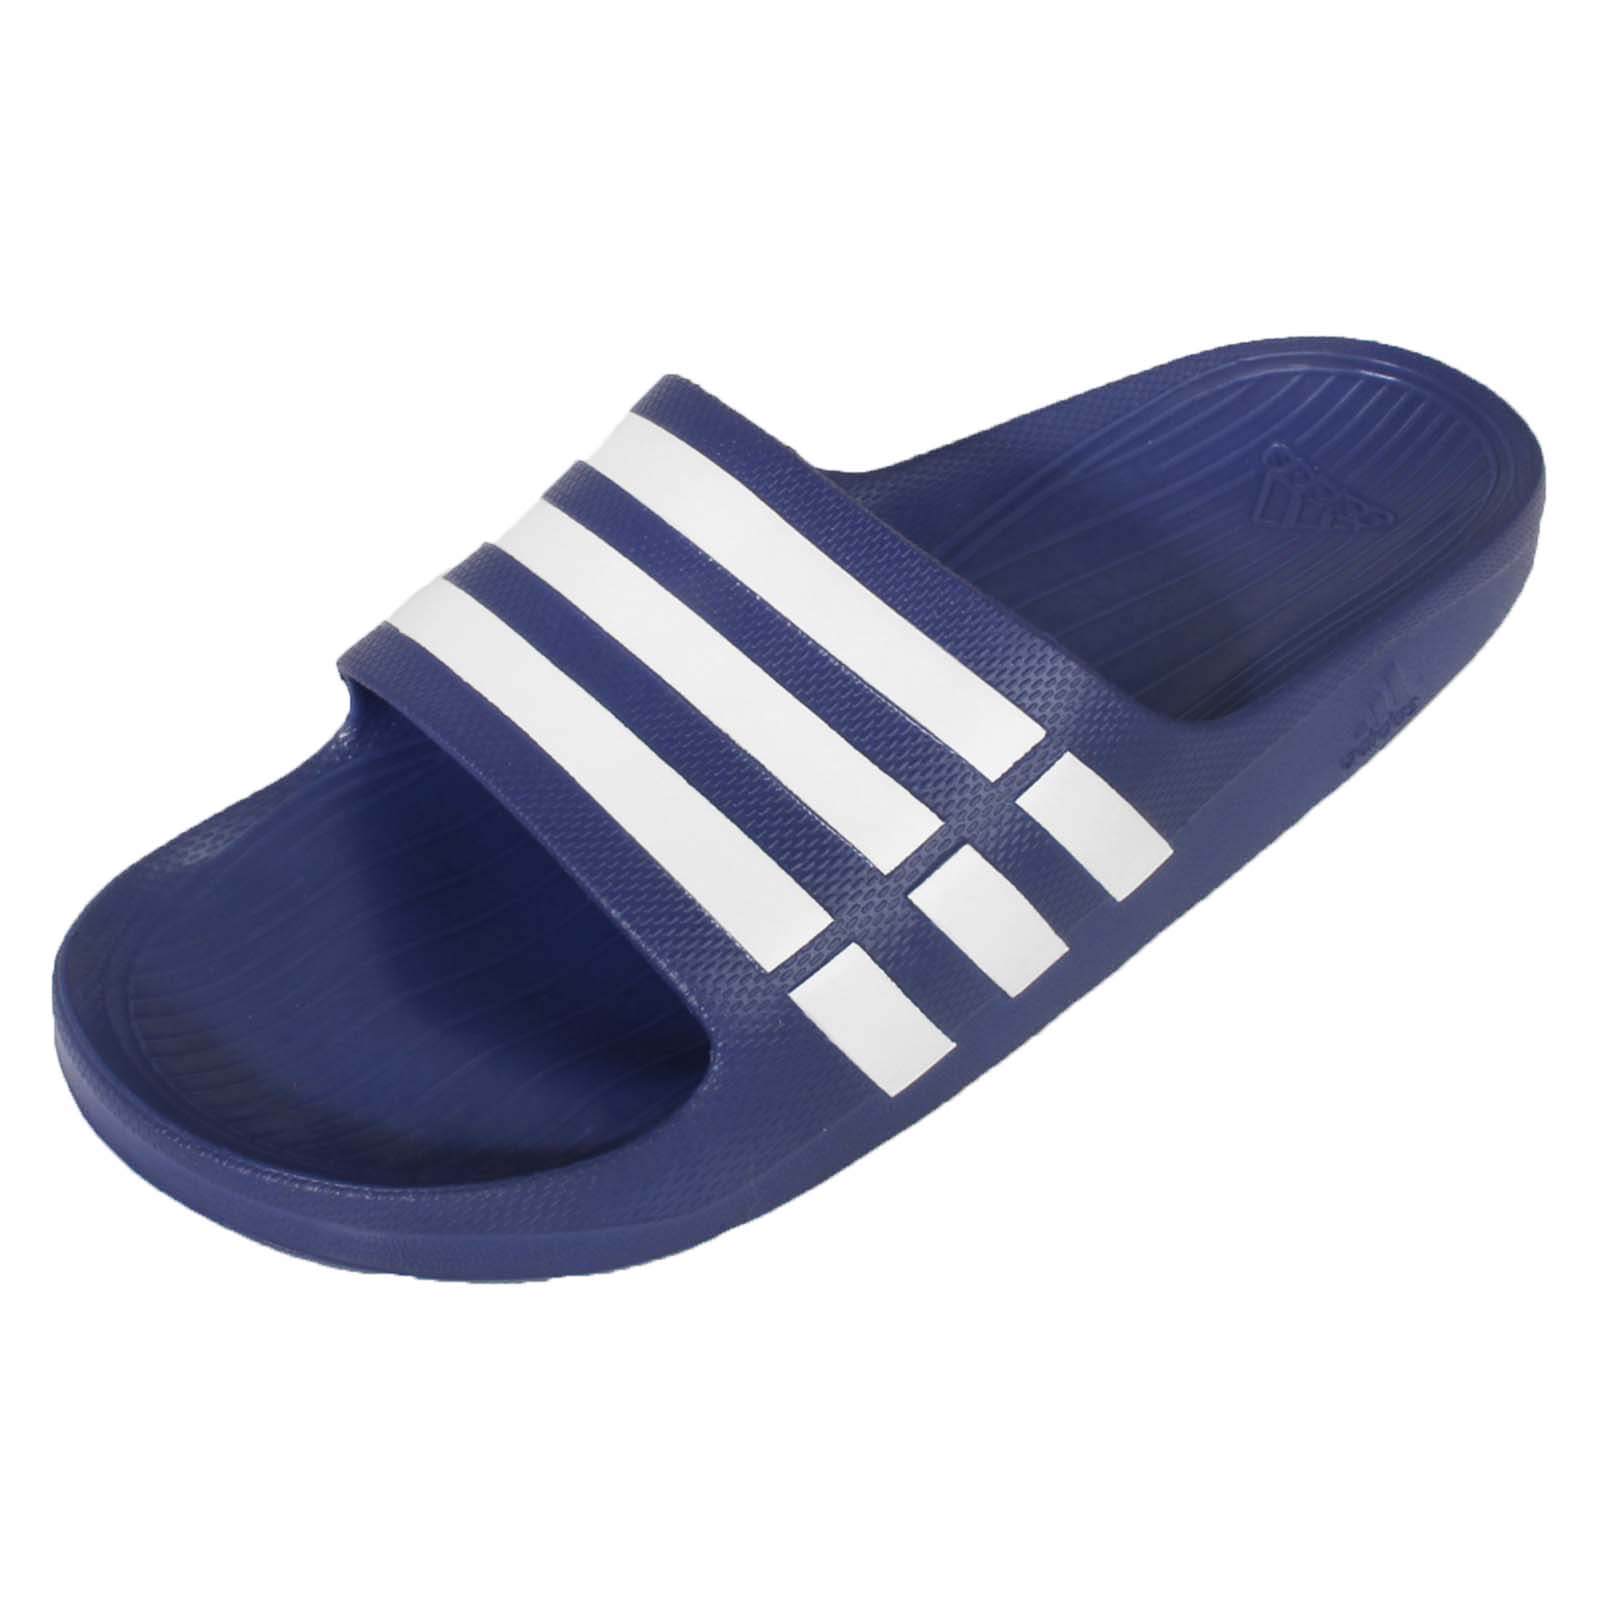 adidas Duramo Slide Navy Blue White Classic Mens Sports Slippers Sandals  G14309